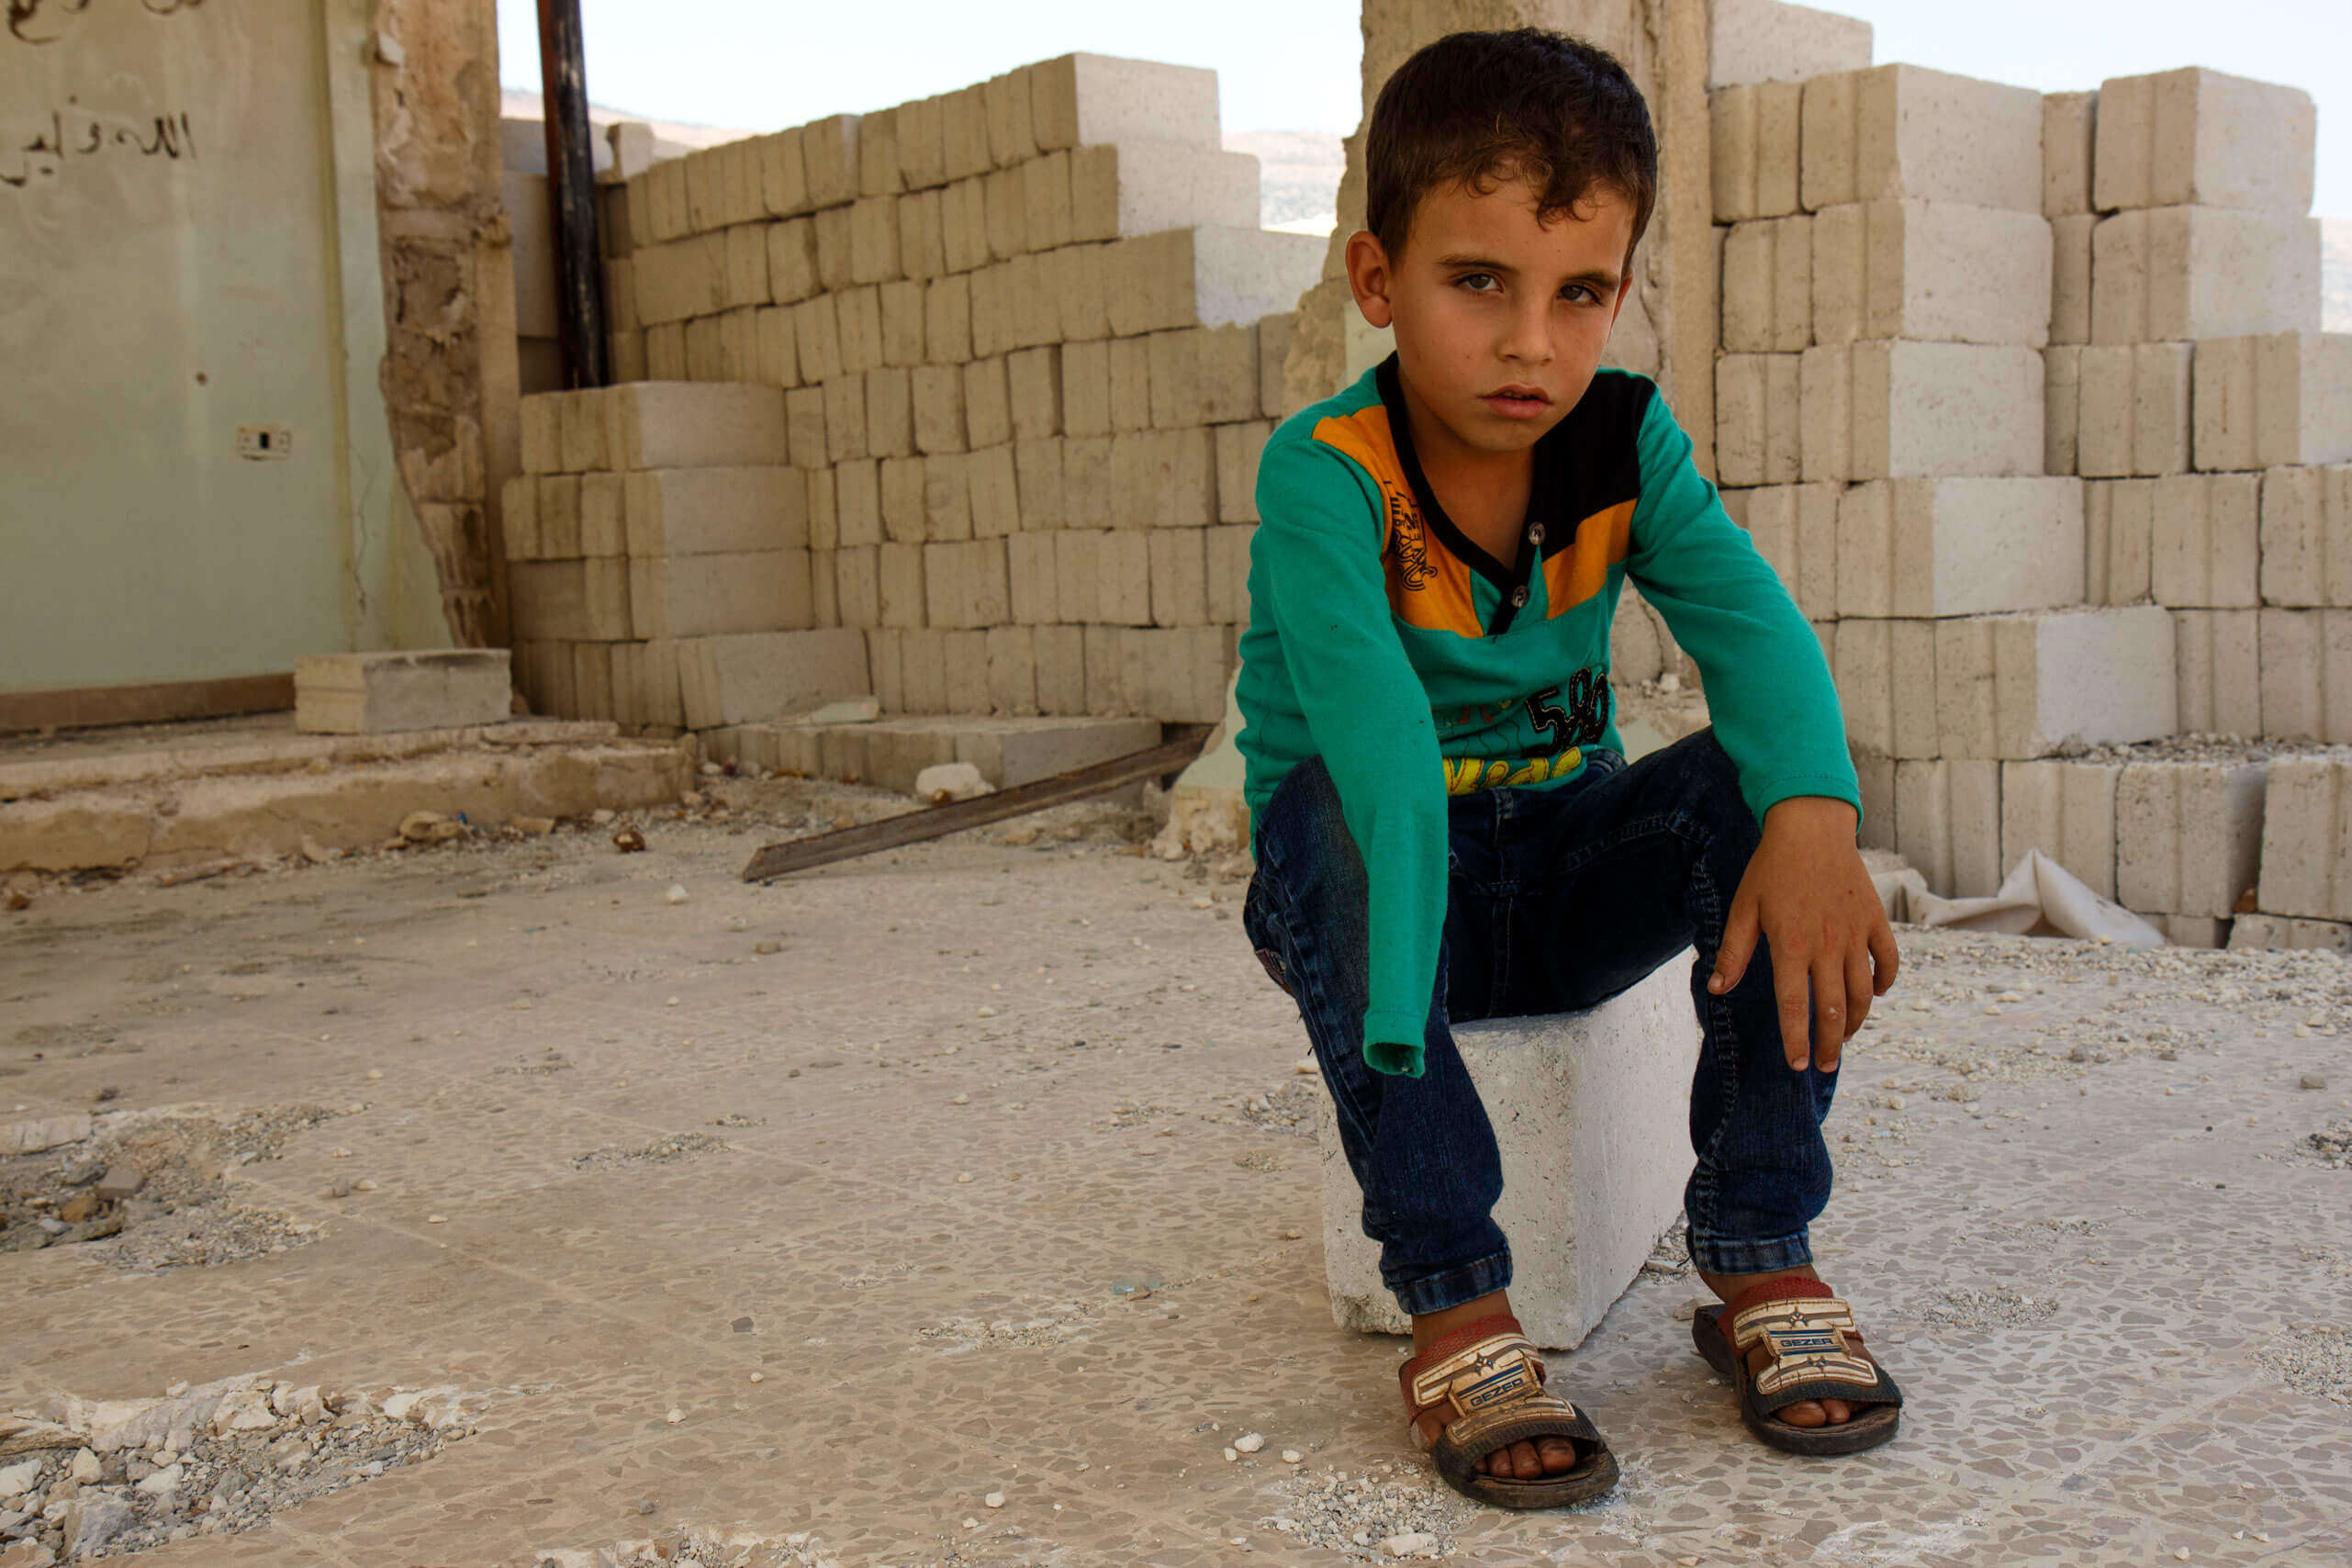 Khalid, 7, suffered severe injuries when his school was attacked in Syria.